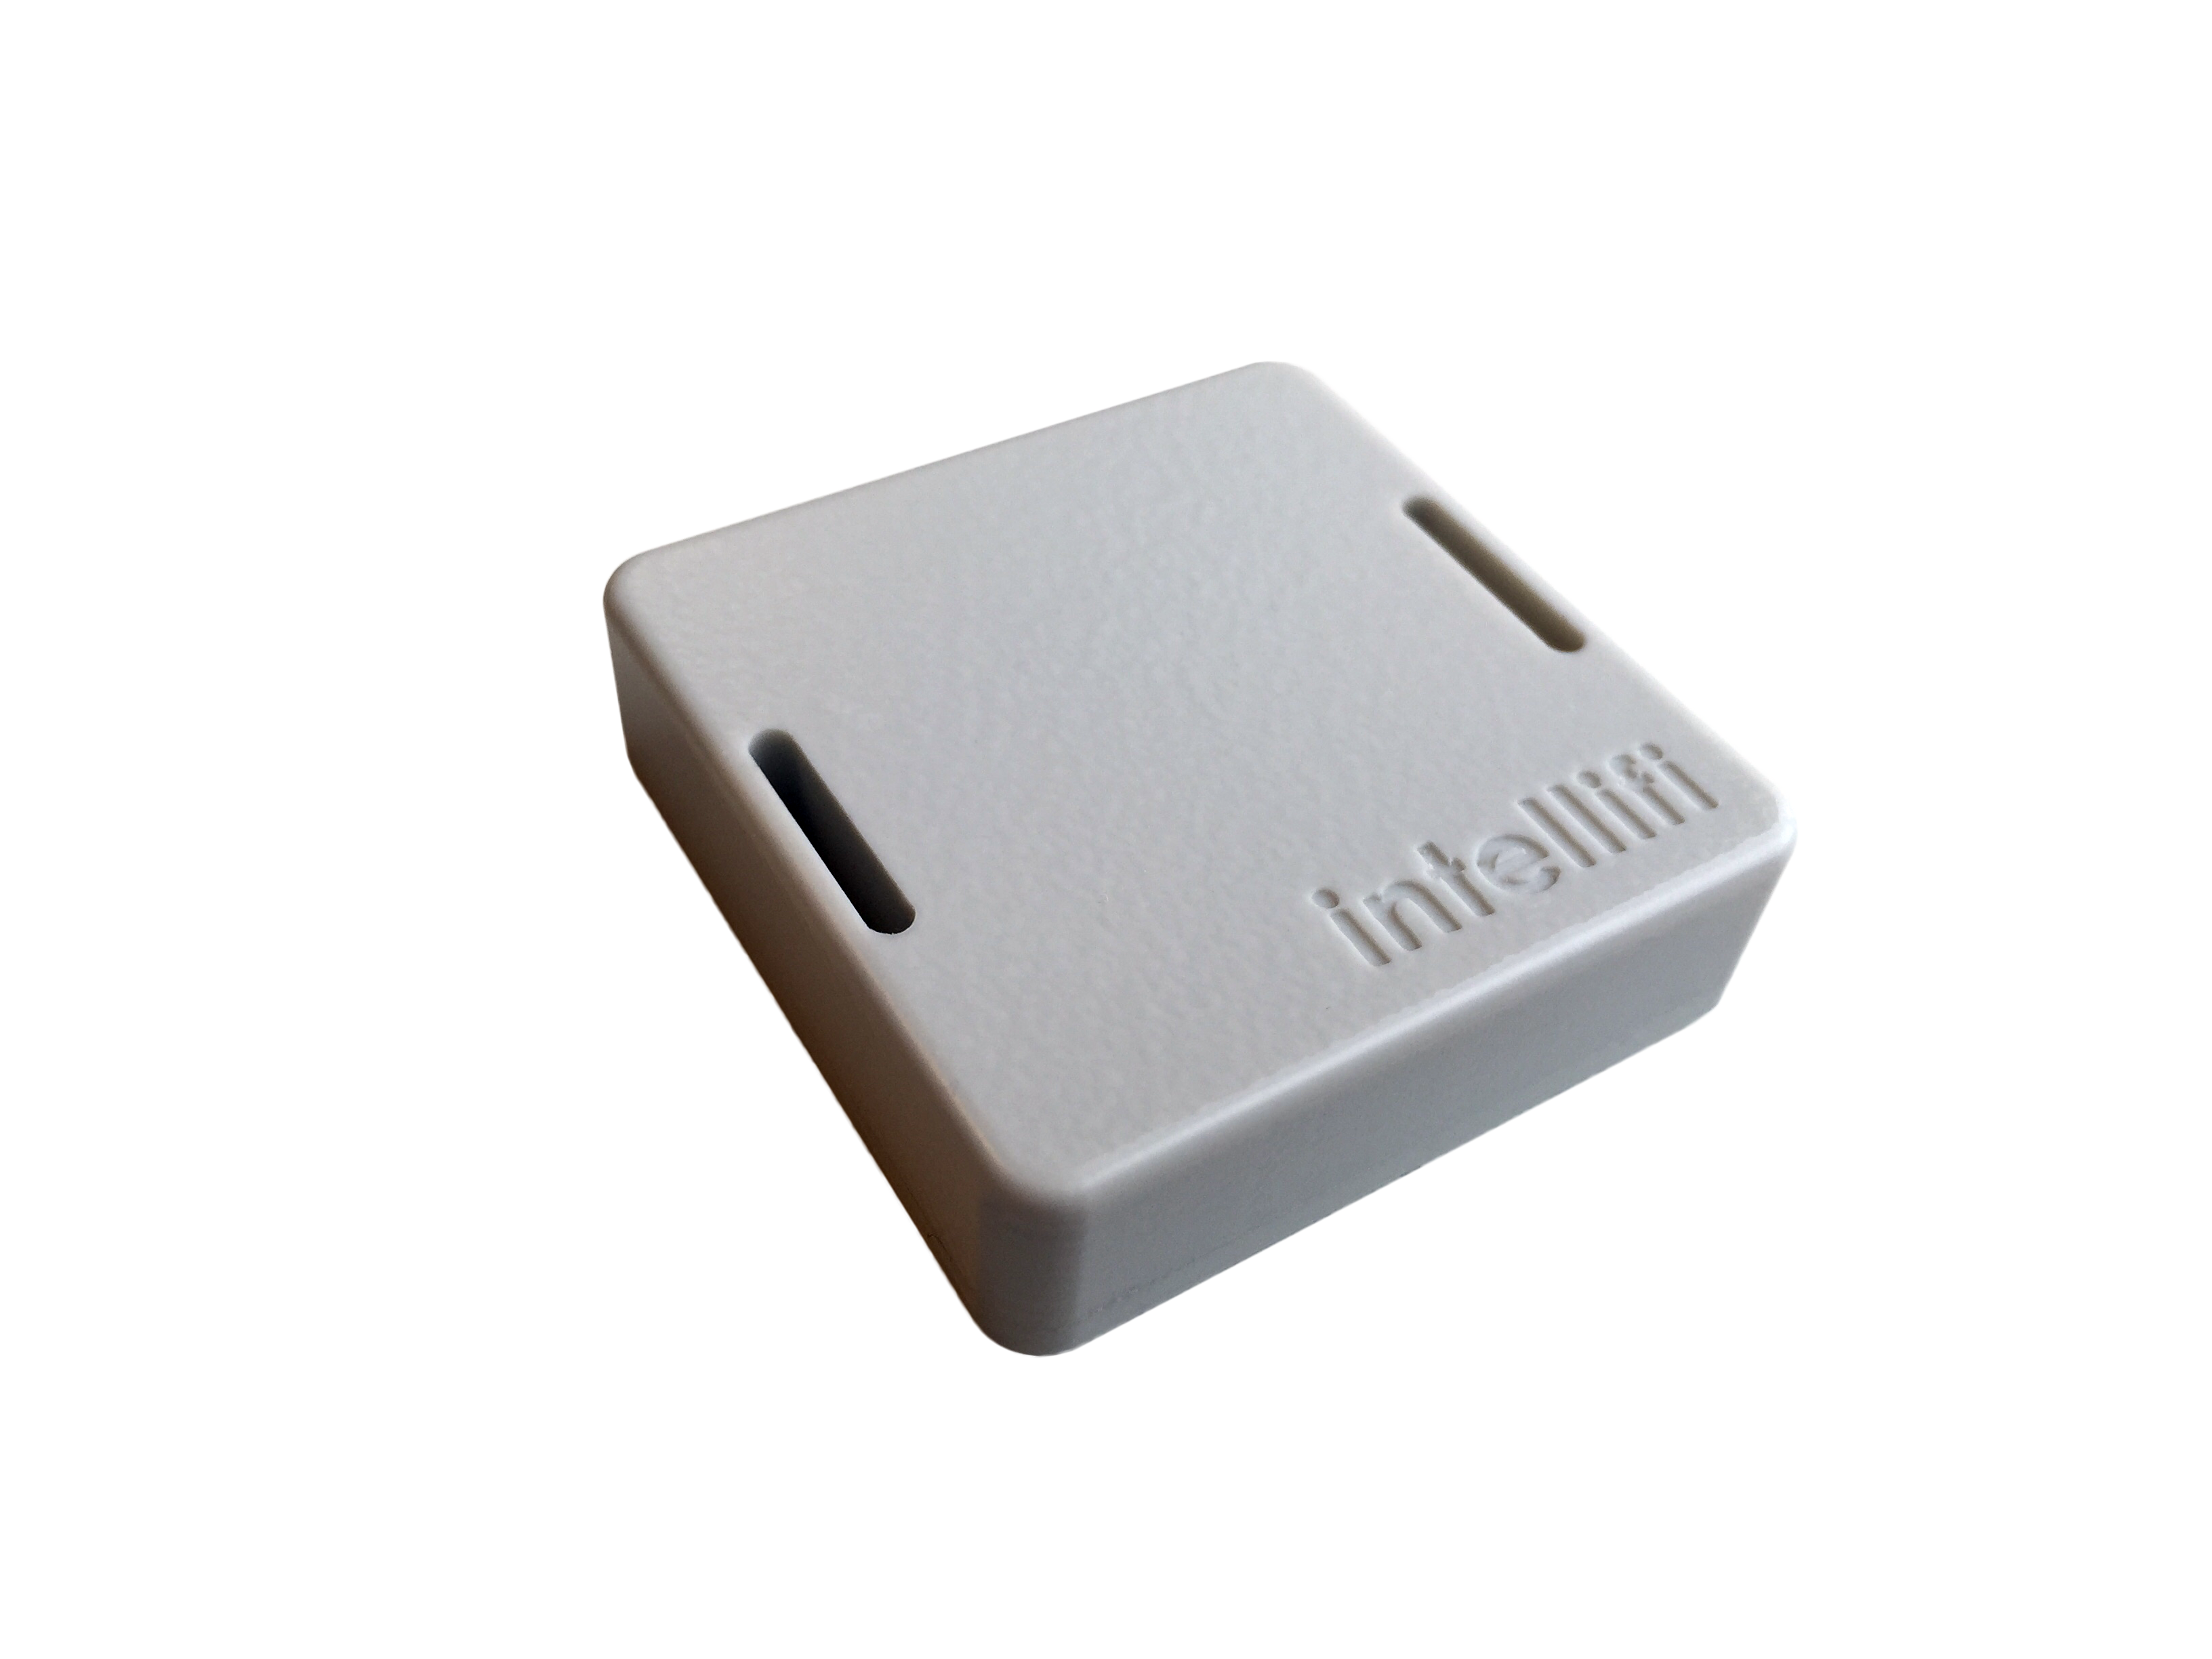 BLE tag product overview – Intellifi